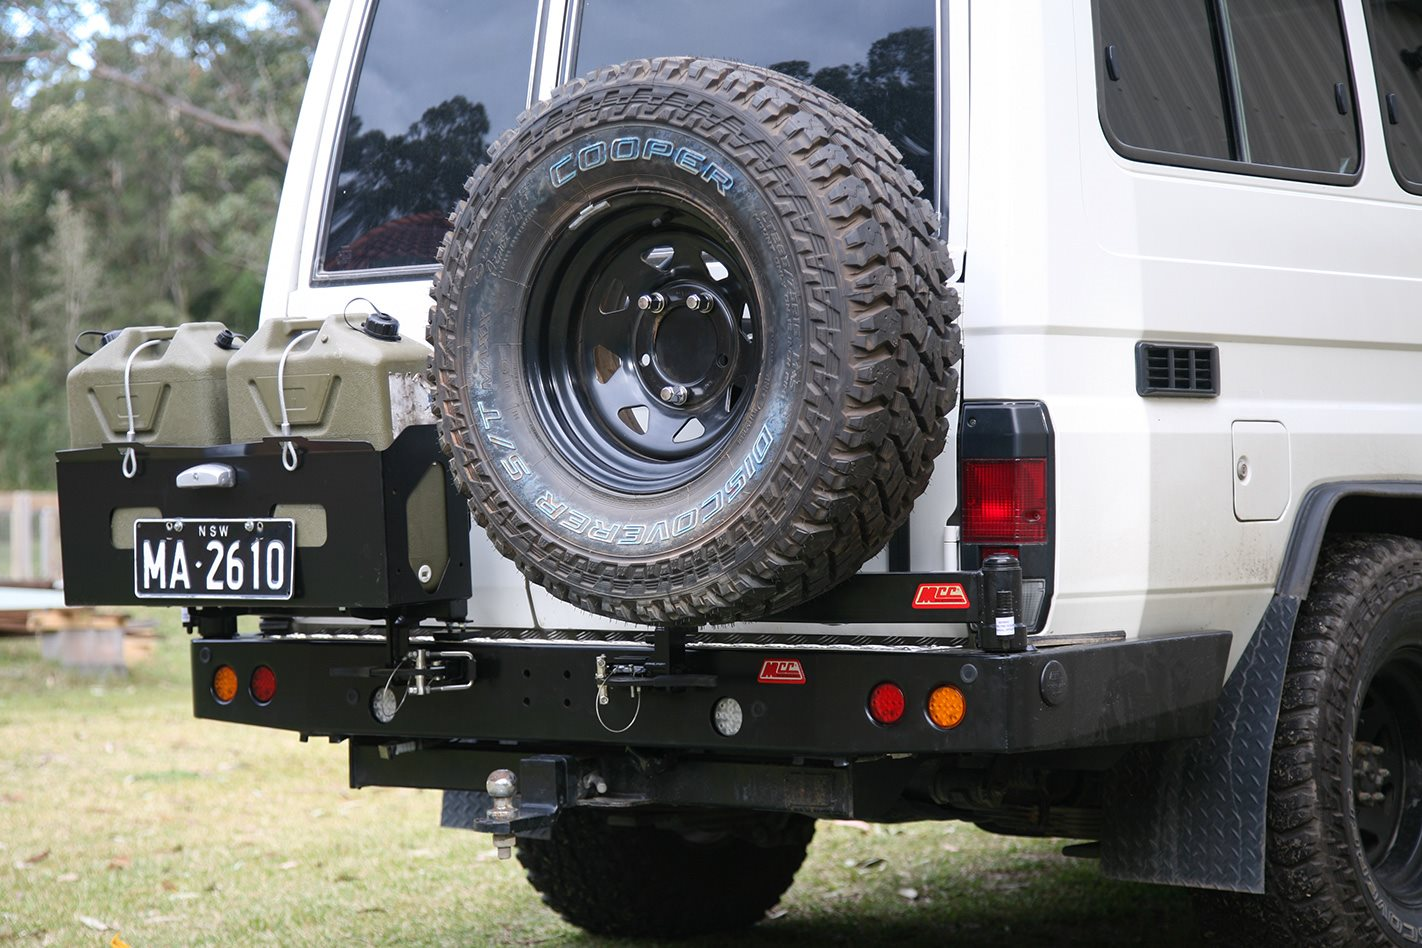 Mcc Rear Wheel Carrier Product Test 4x4 Australia